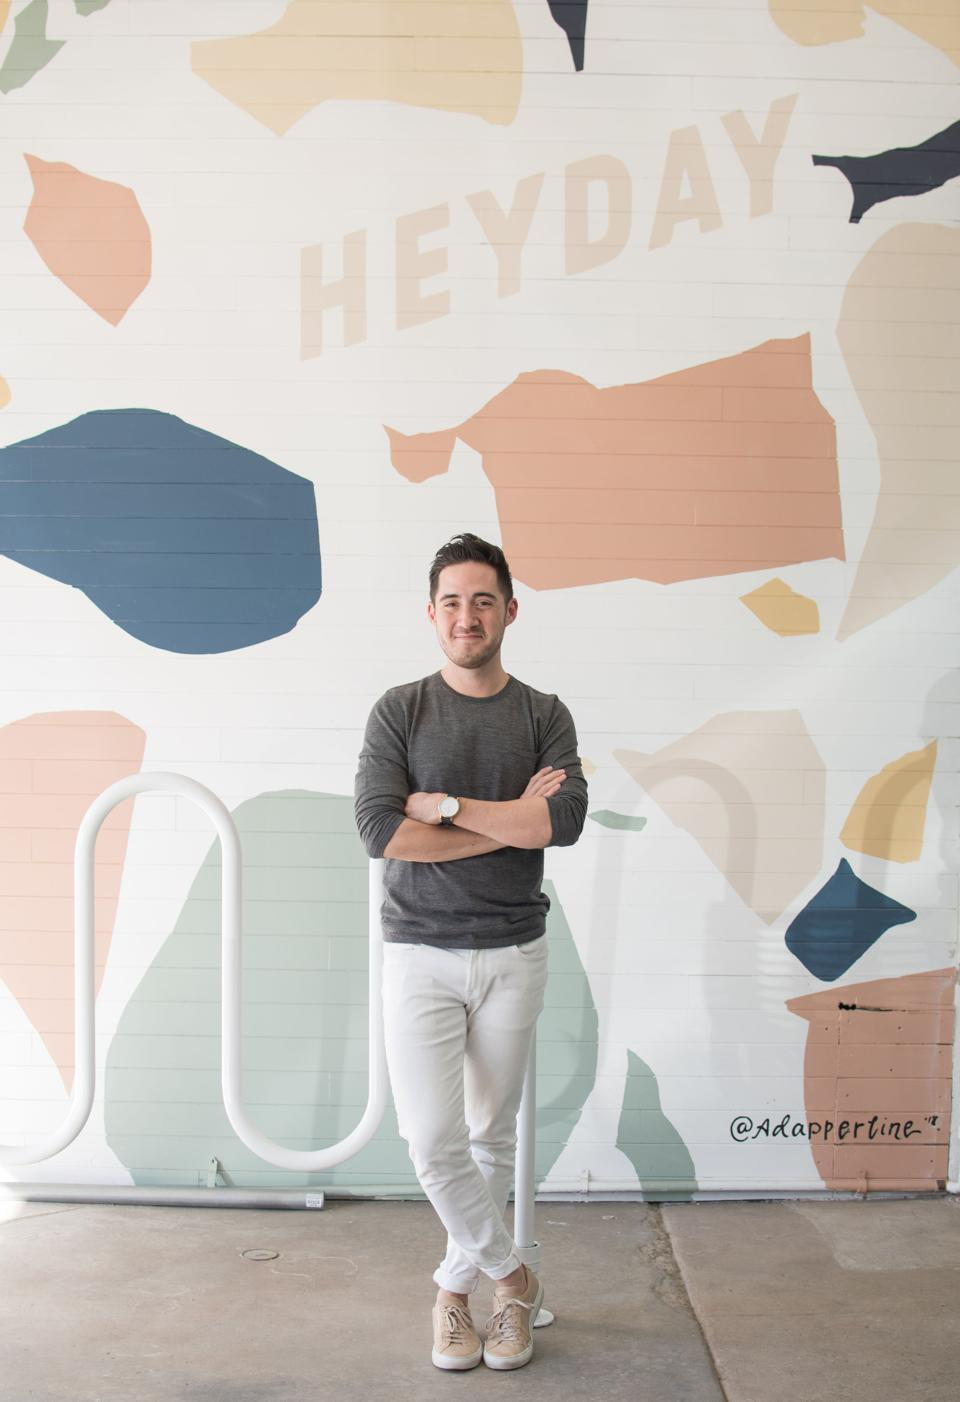 Michael Pollak is cofounder, and also holds the title of Chief Experience Officer at Heyday.